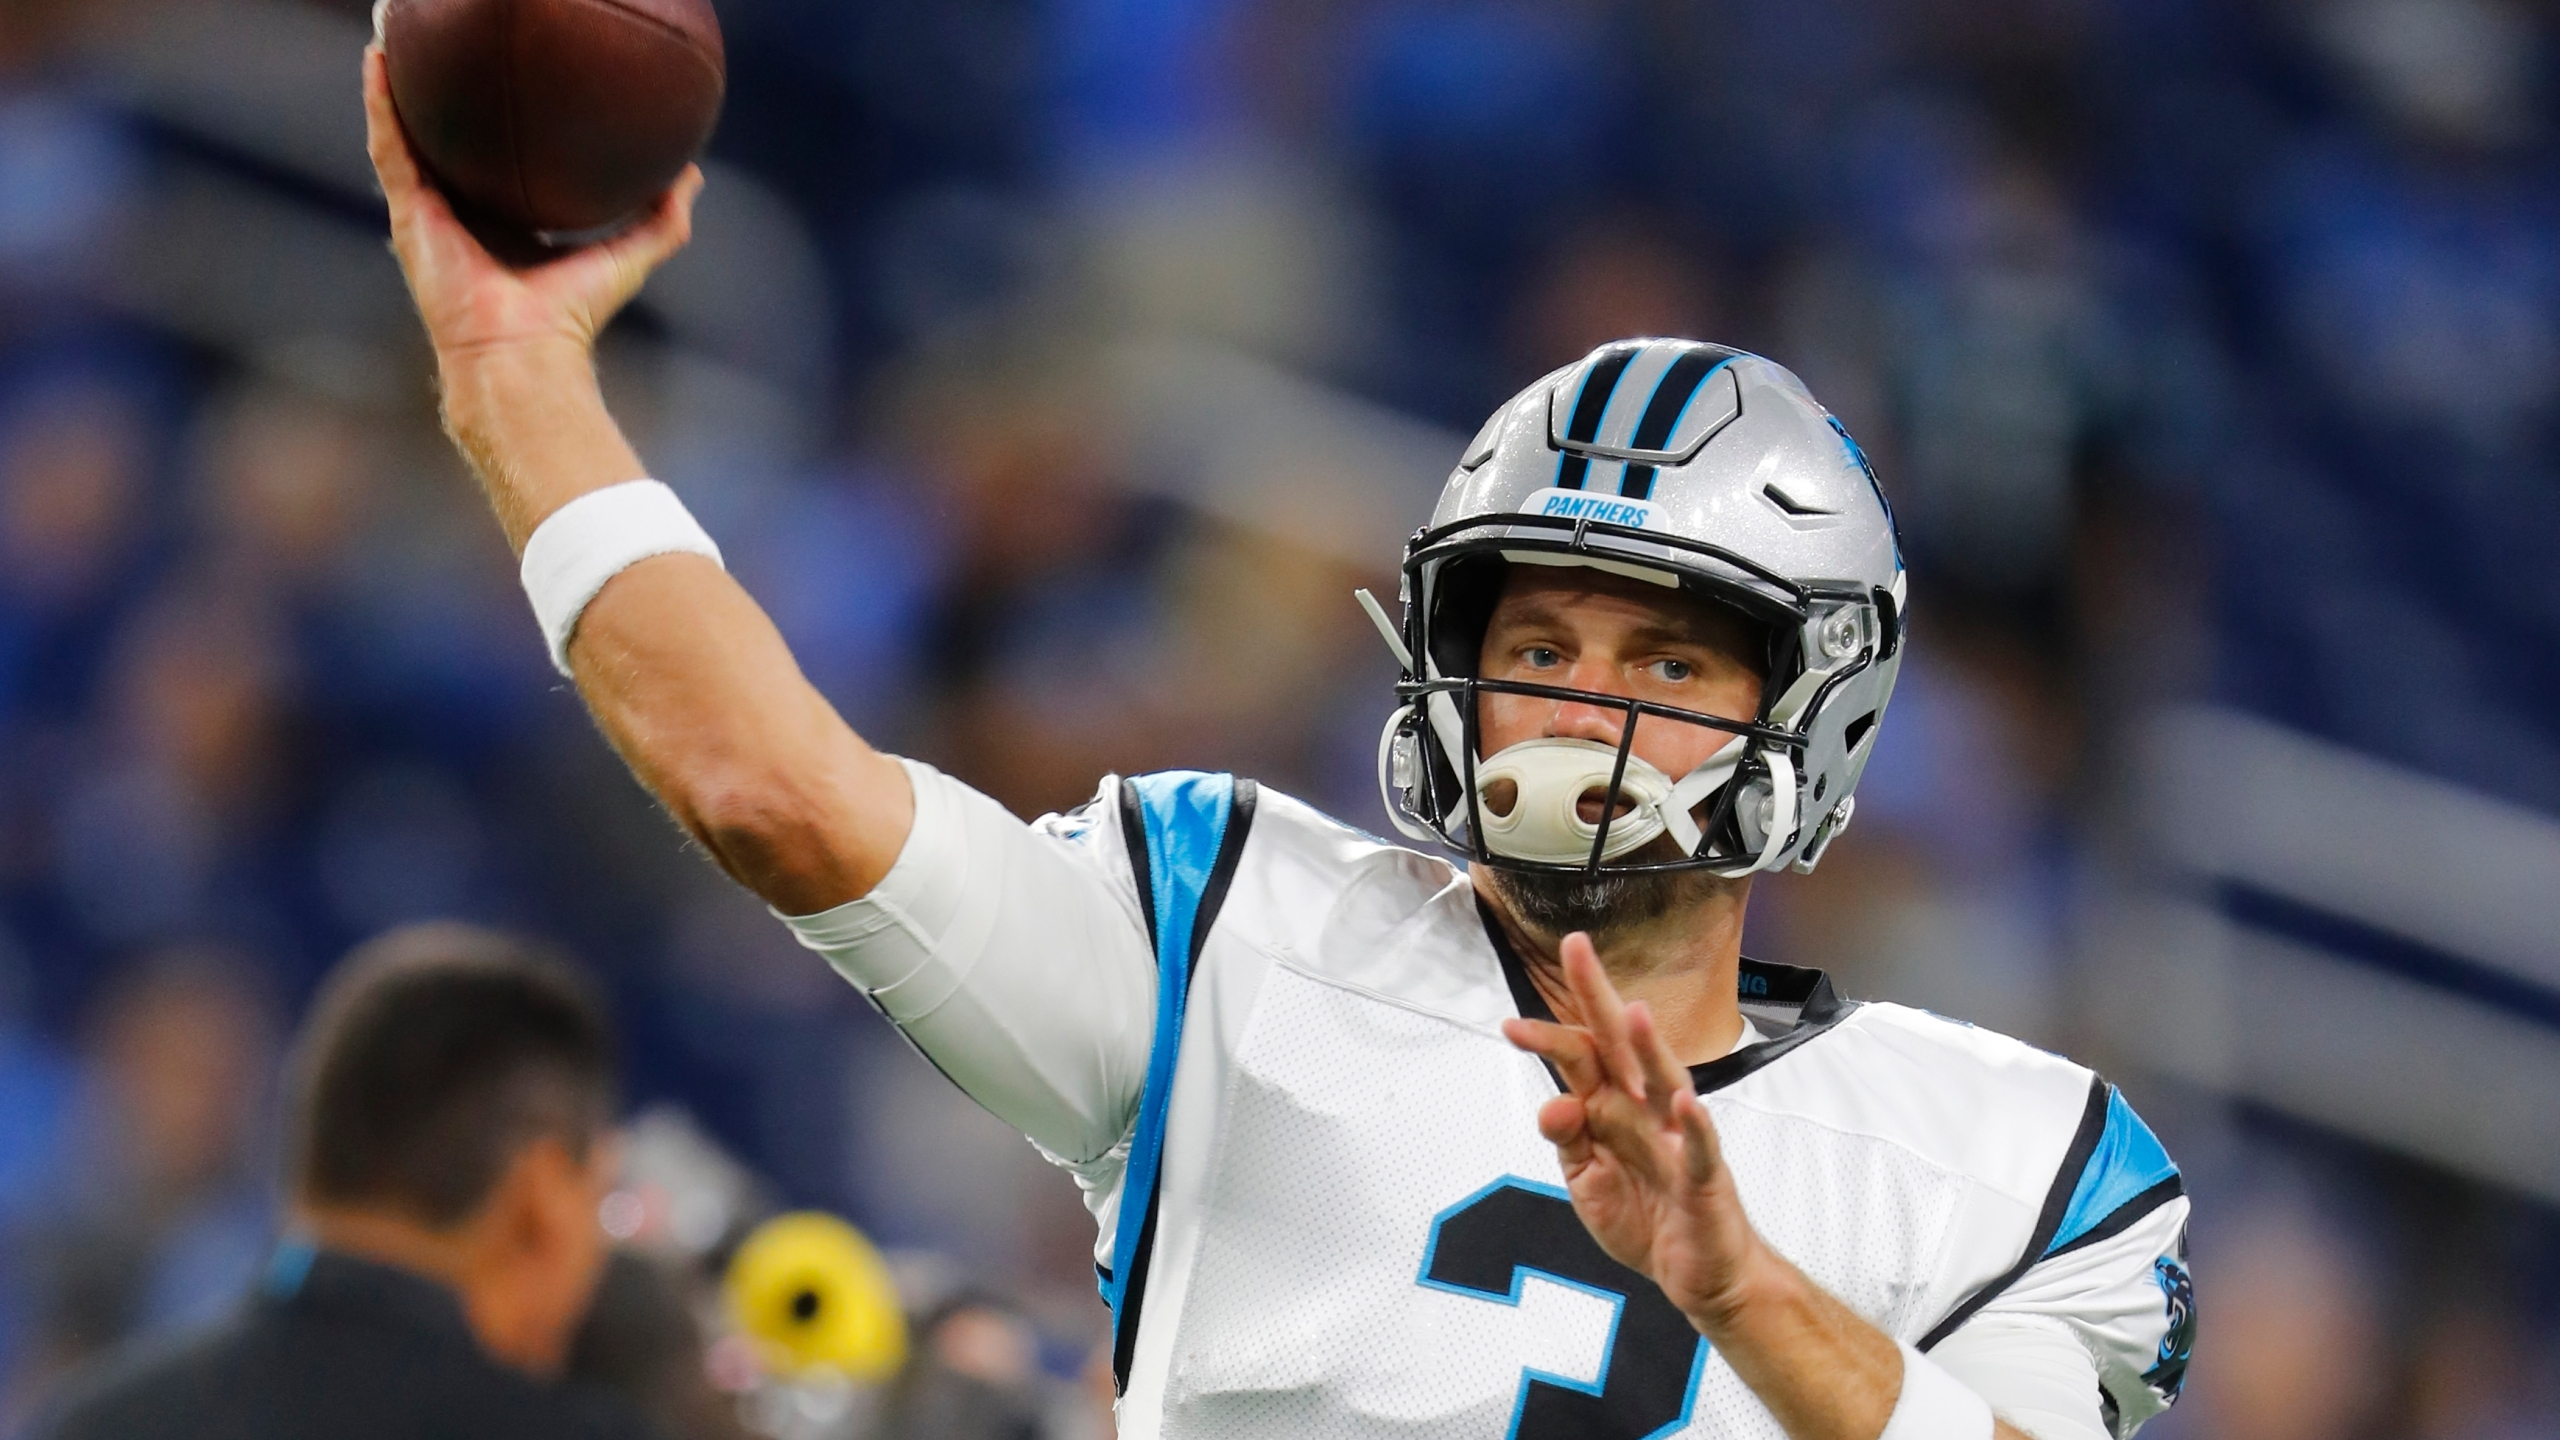 Panthers Lions Football_1538923733322